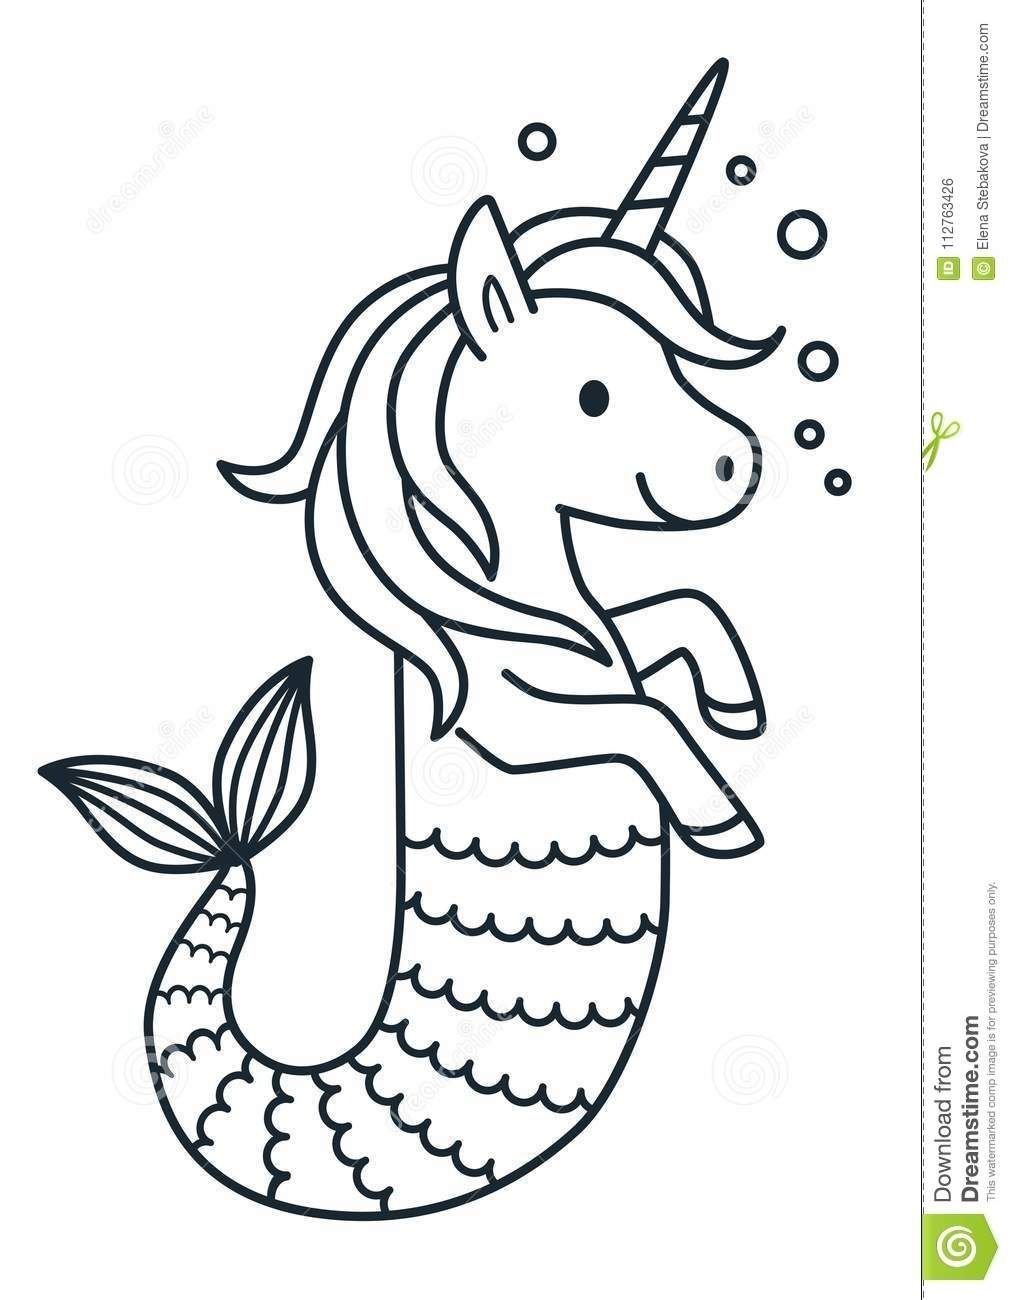 unicorn coloring pages for kids   best coloring pages